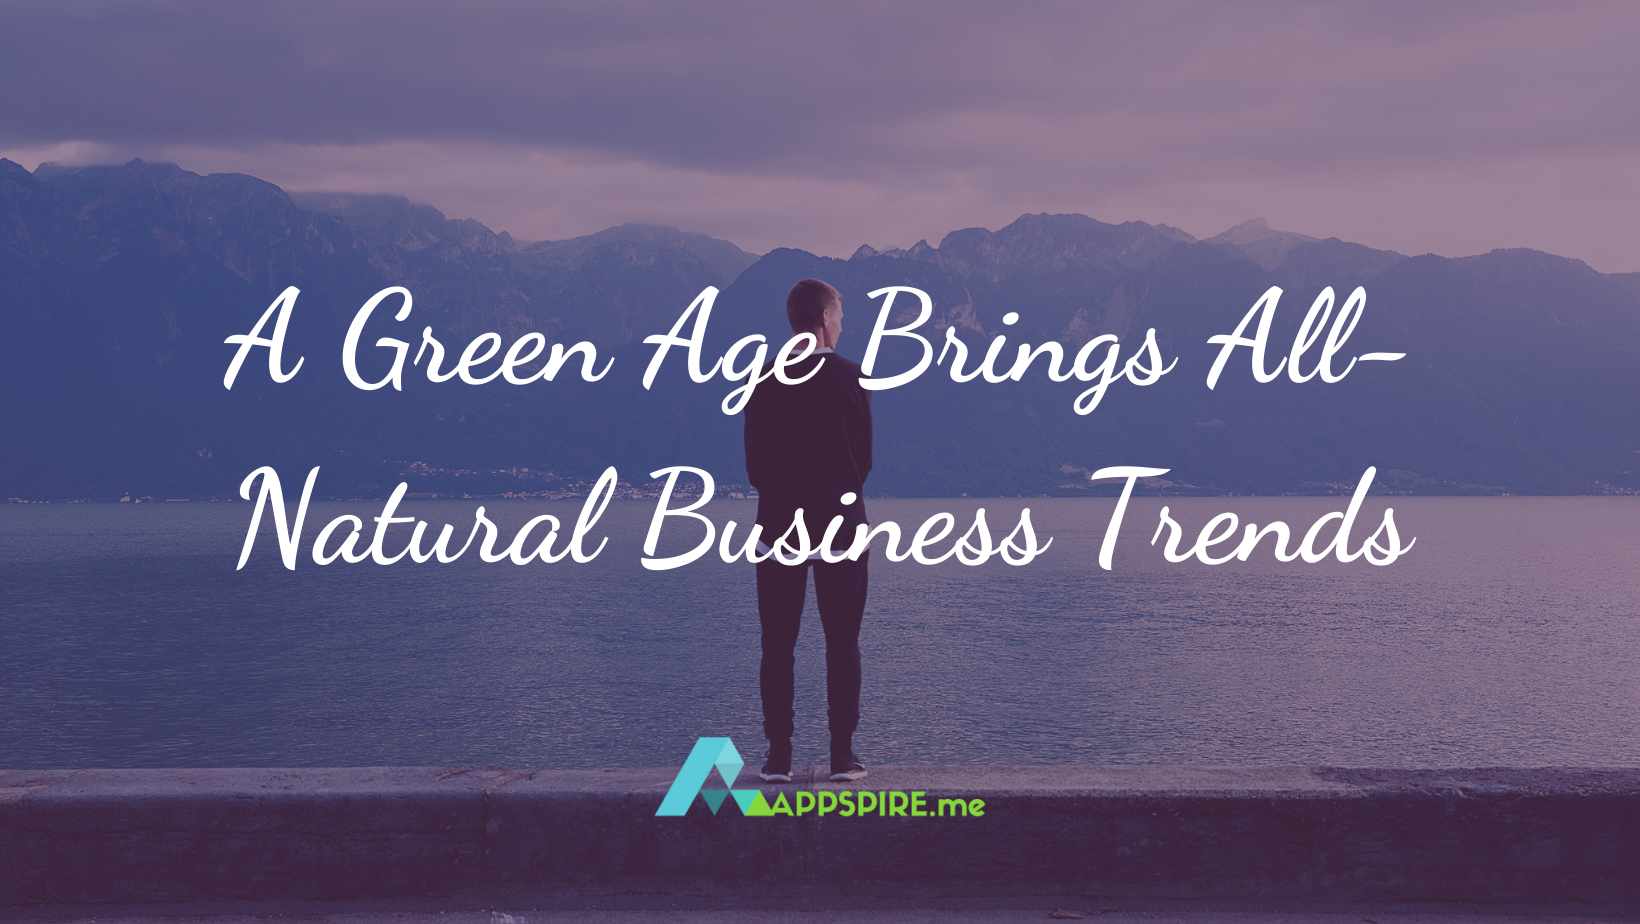 A Green Age Brings All-Natural Business Trends